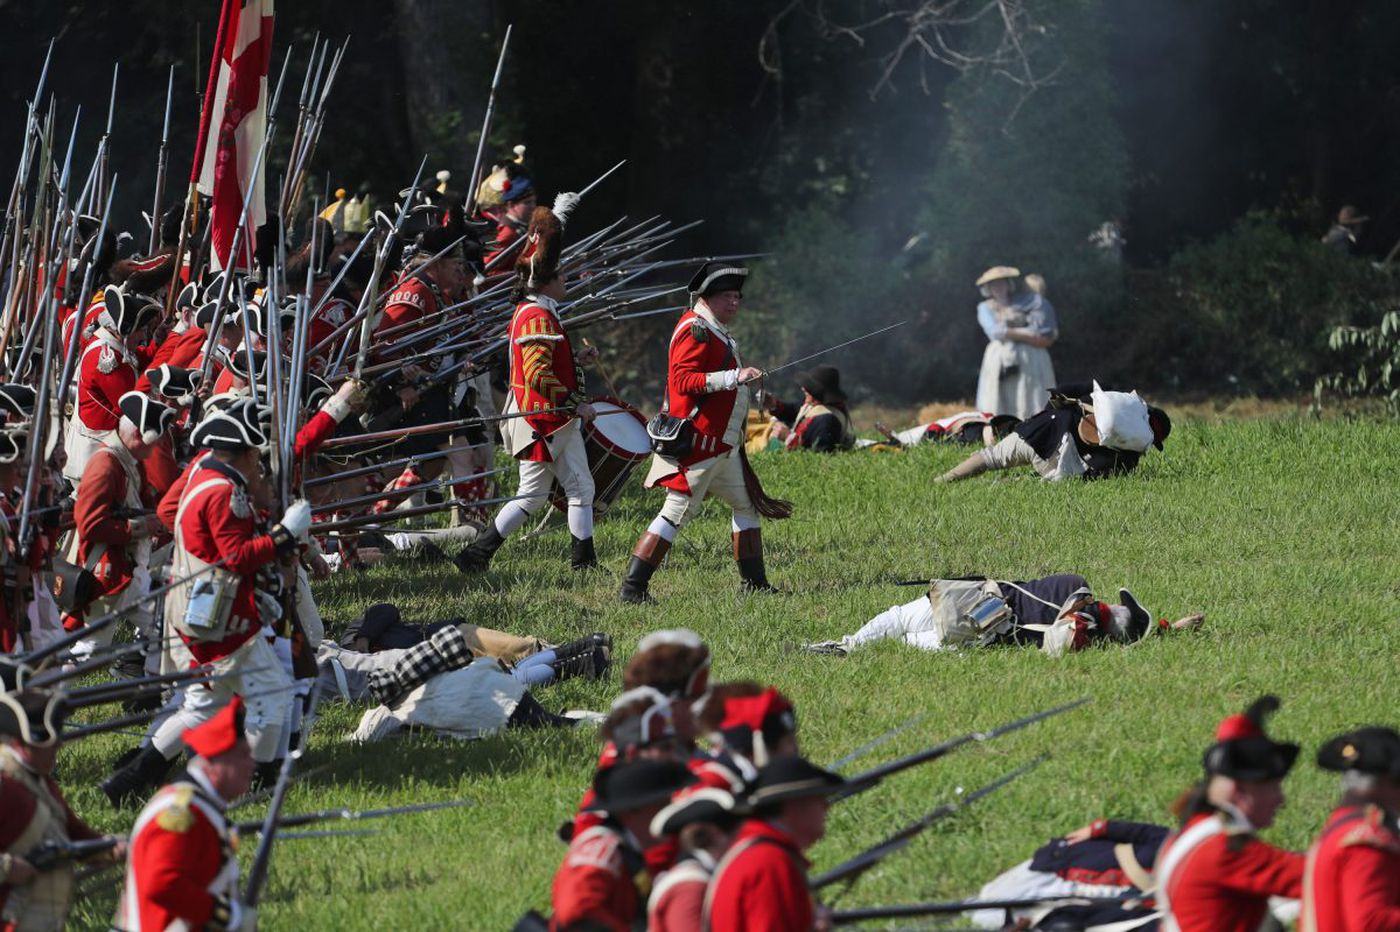 Brandywine Battlefield 1, Free Markets 0: Scrapped Chester County housing development a sign of hope for hallowed Revolutionary War site